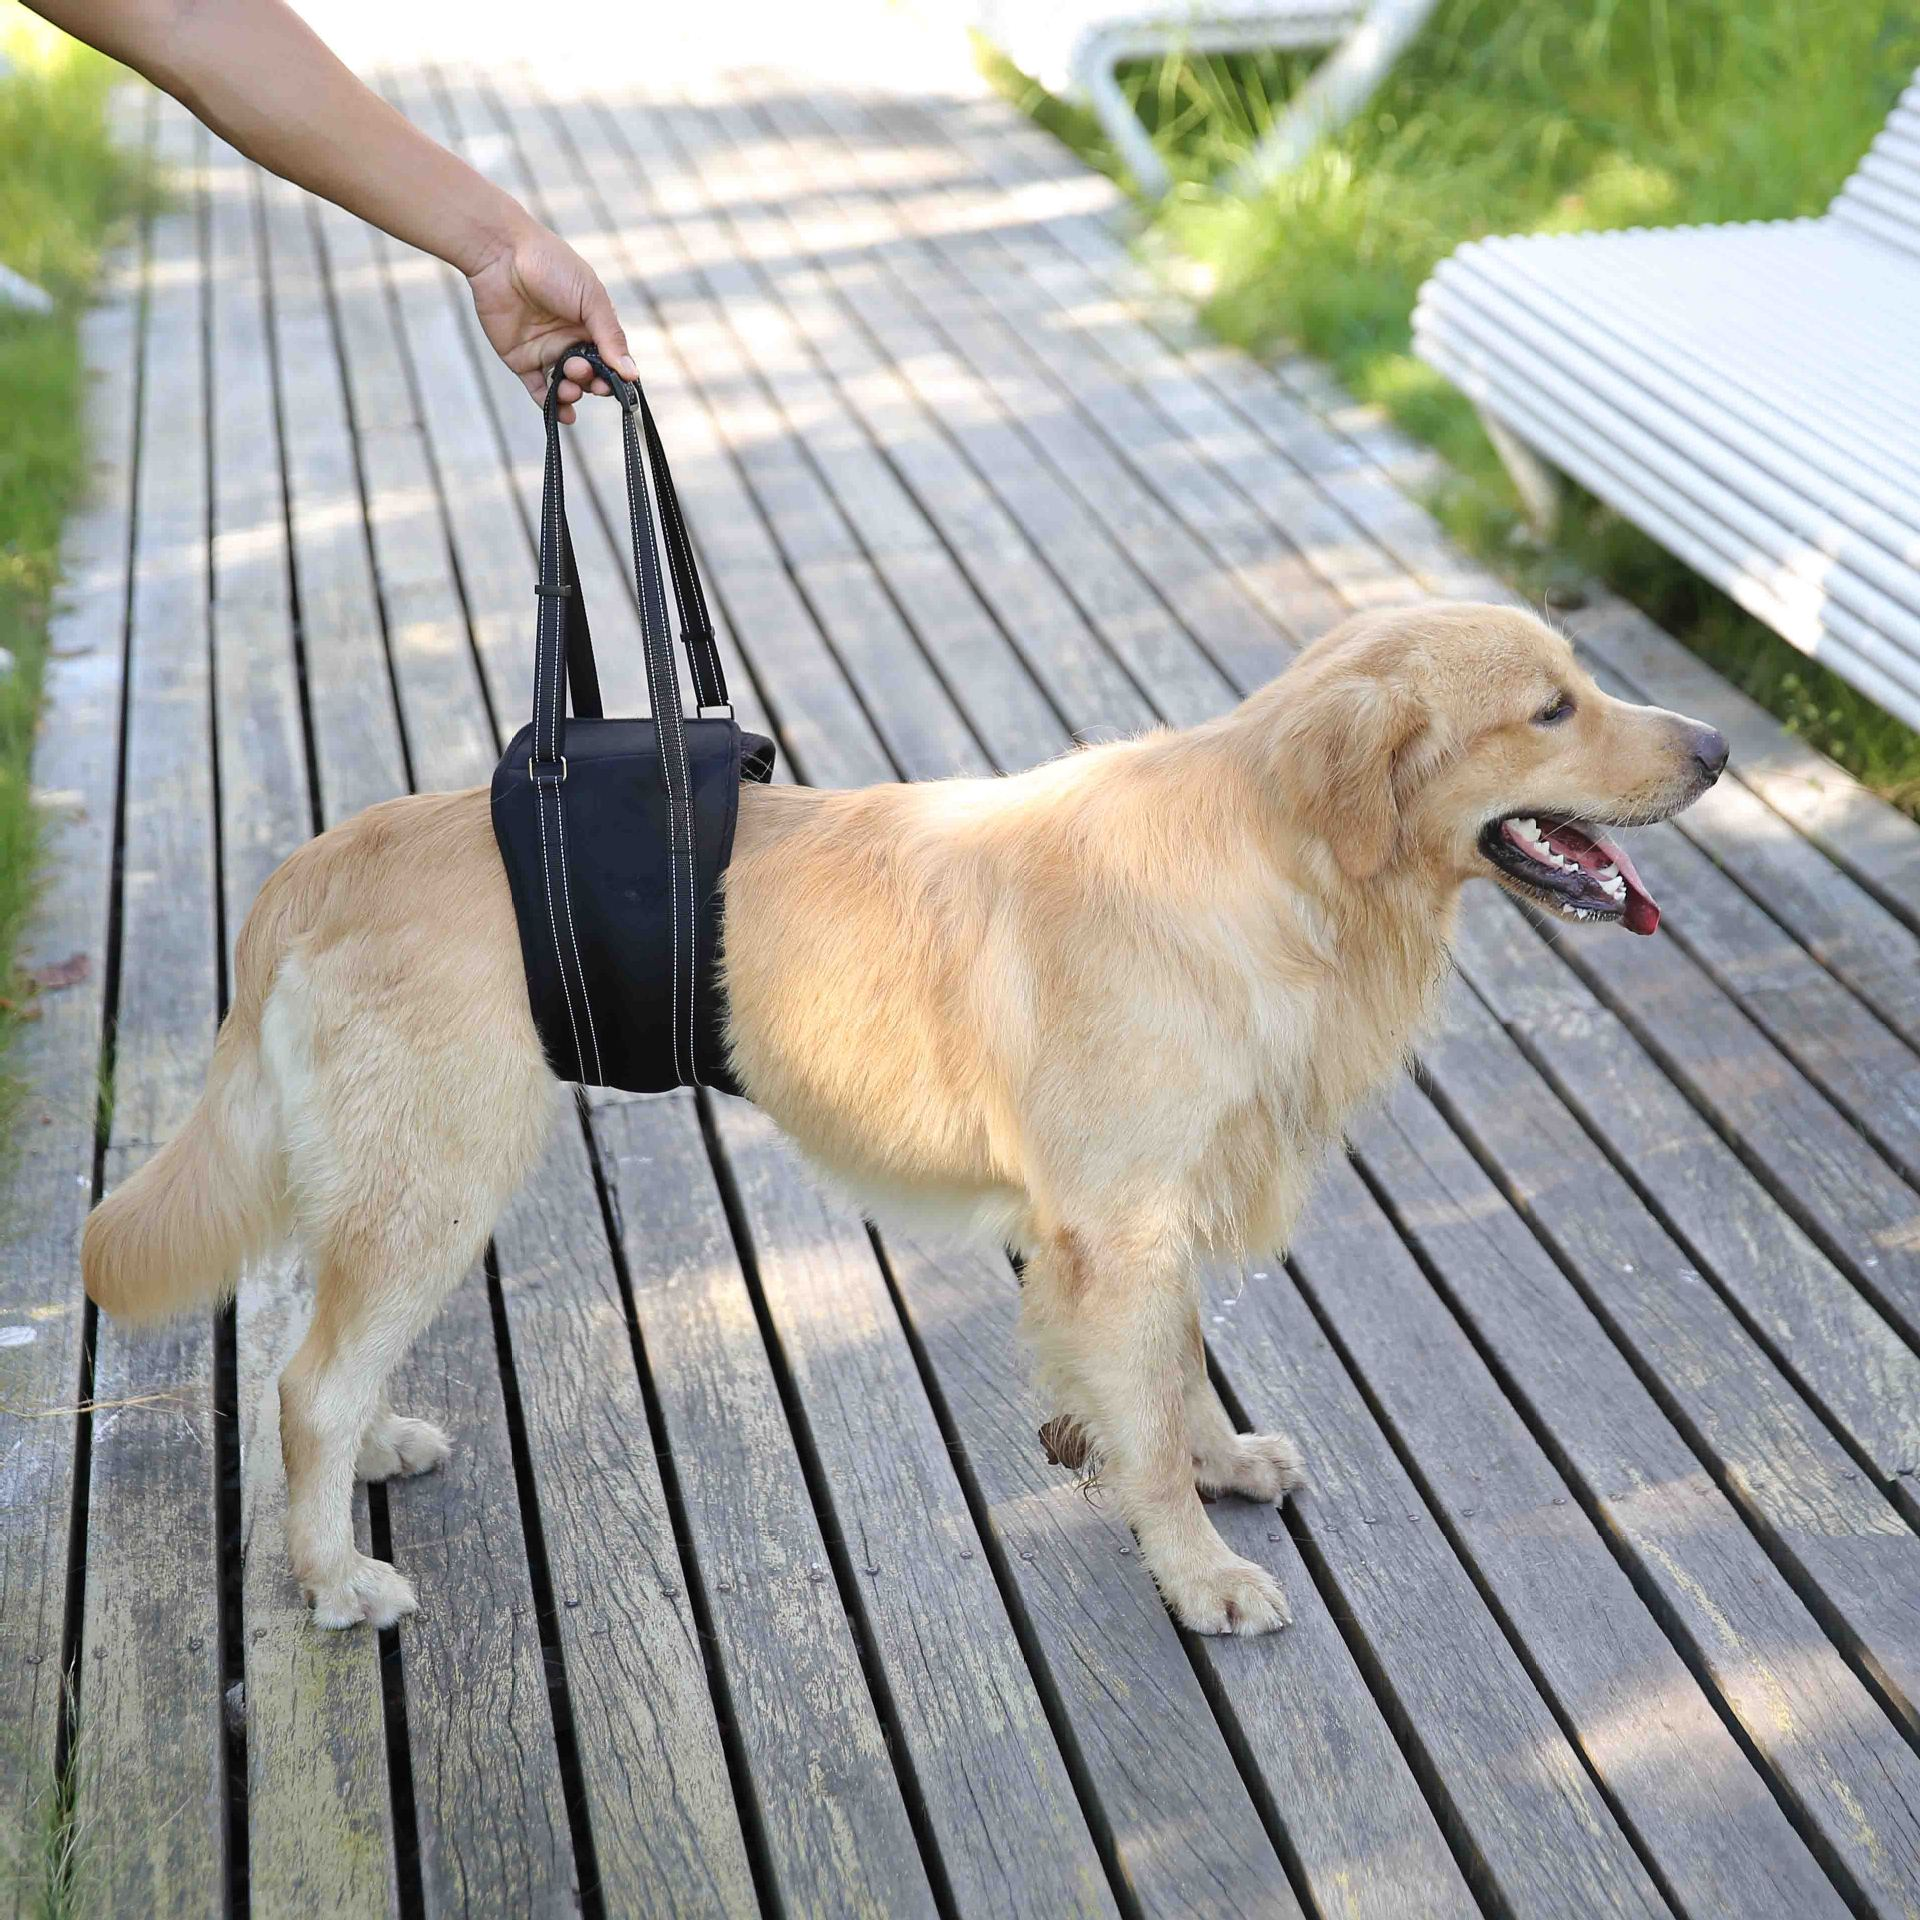 Elderly People With Disabilities Pet Dog Downstairs Auxiliary Walking Suspender Strap